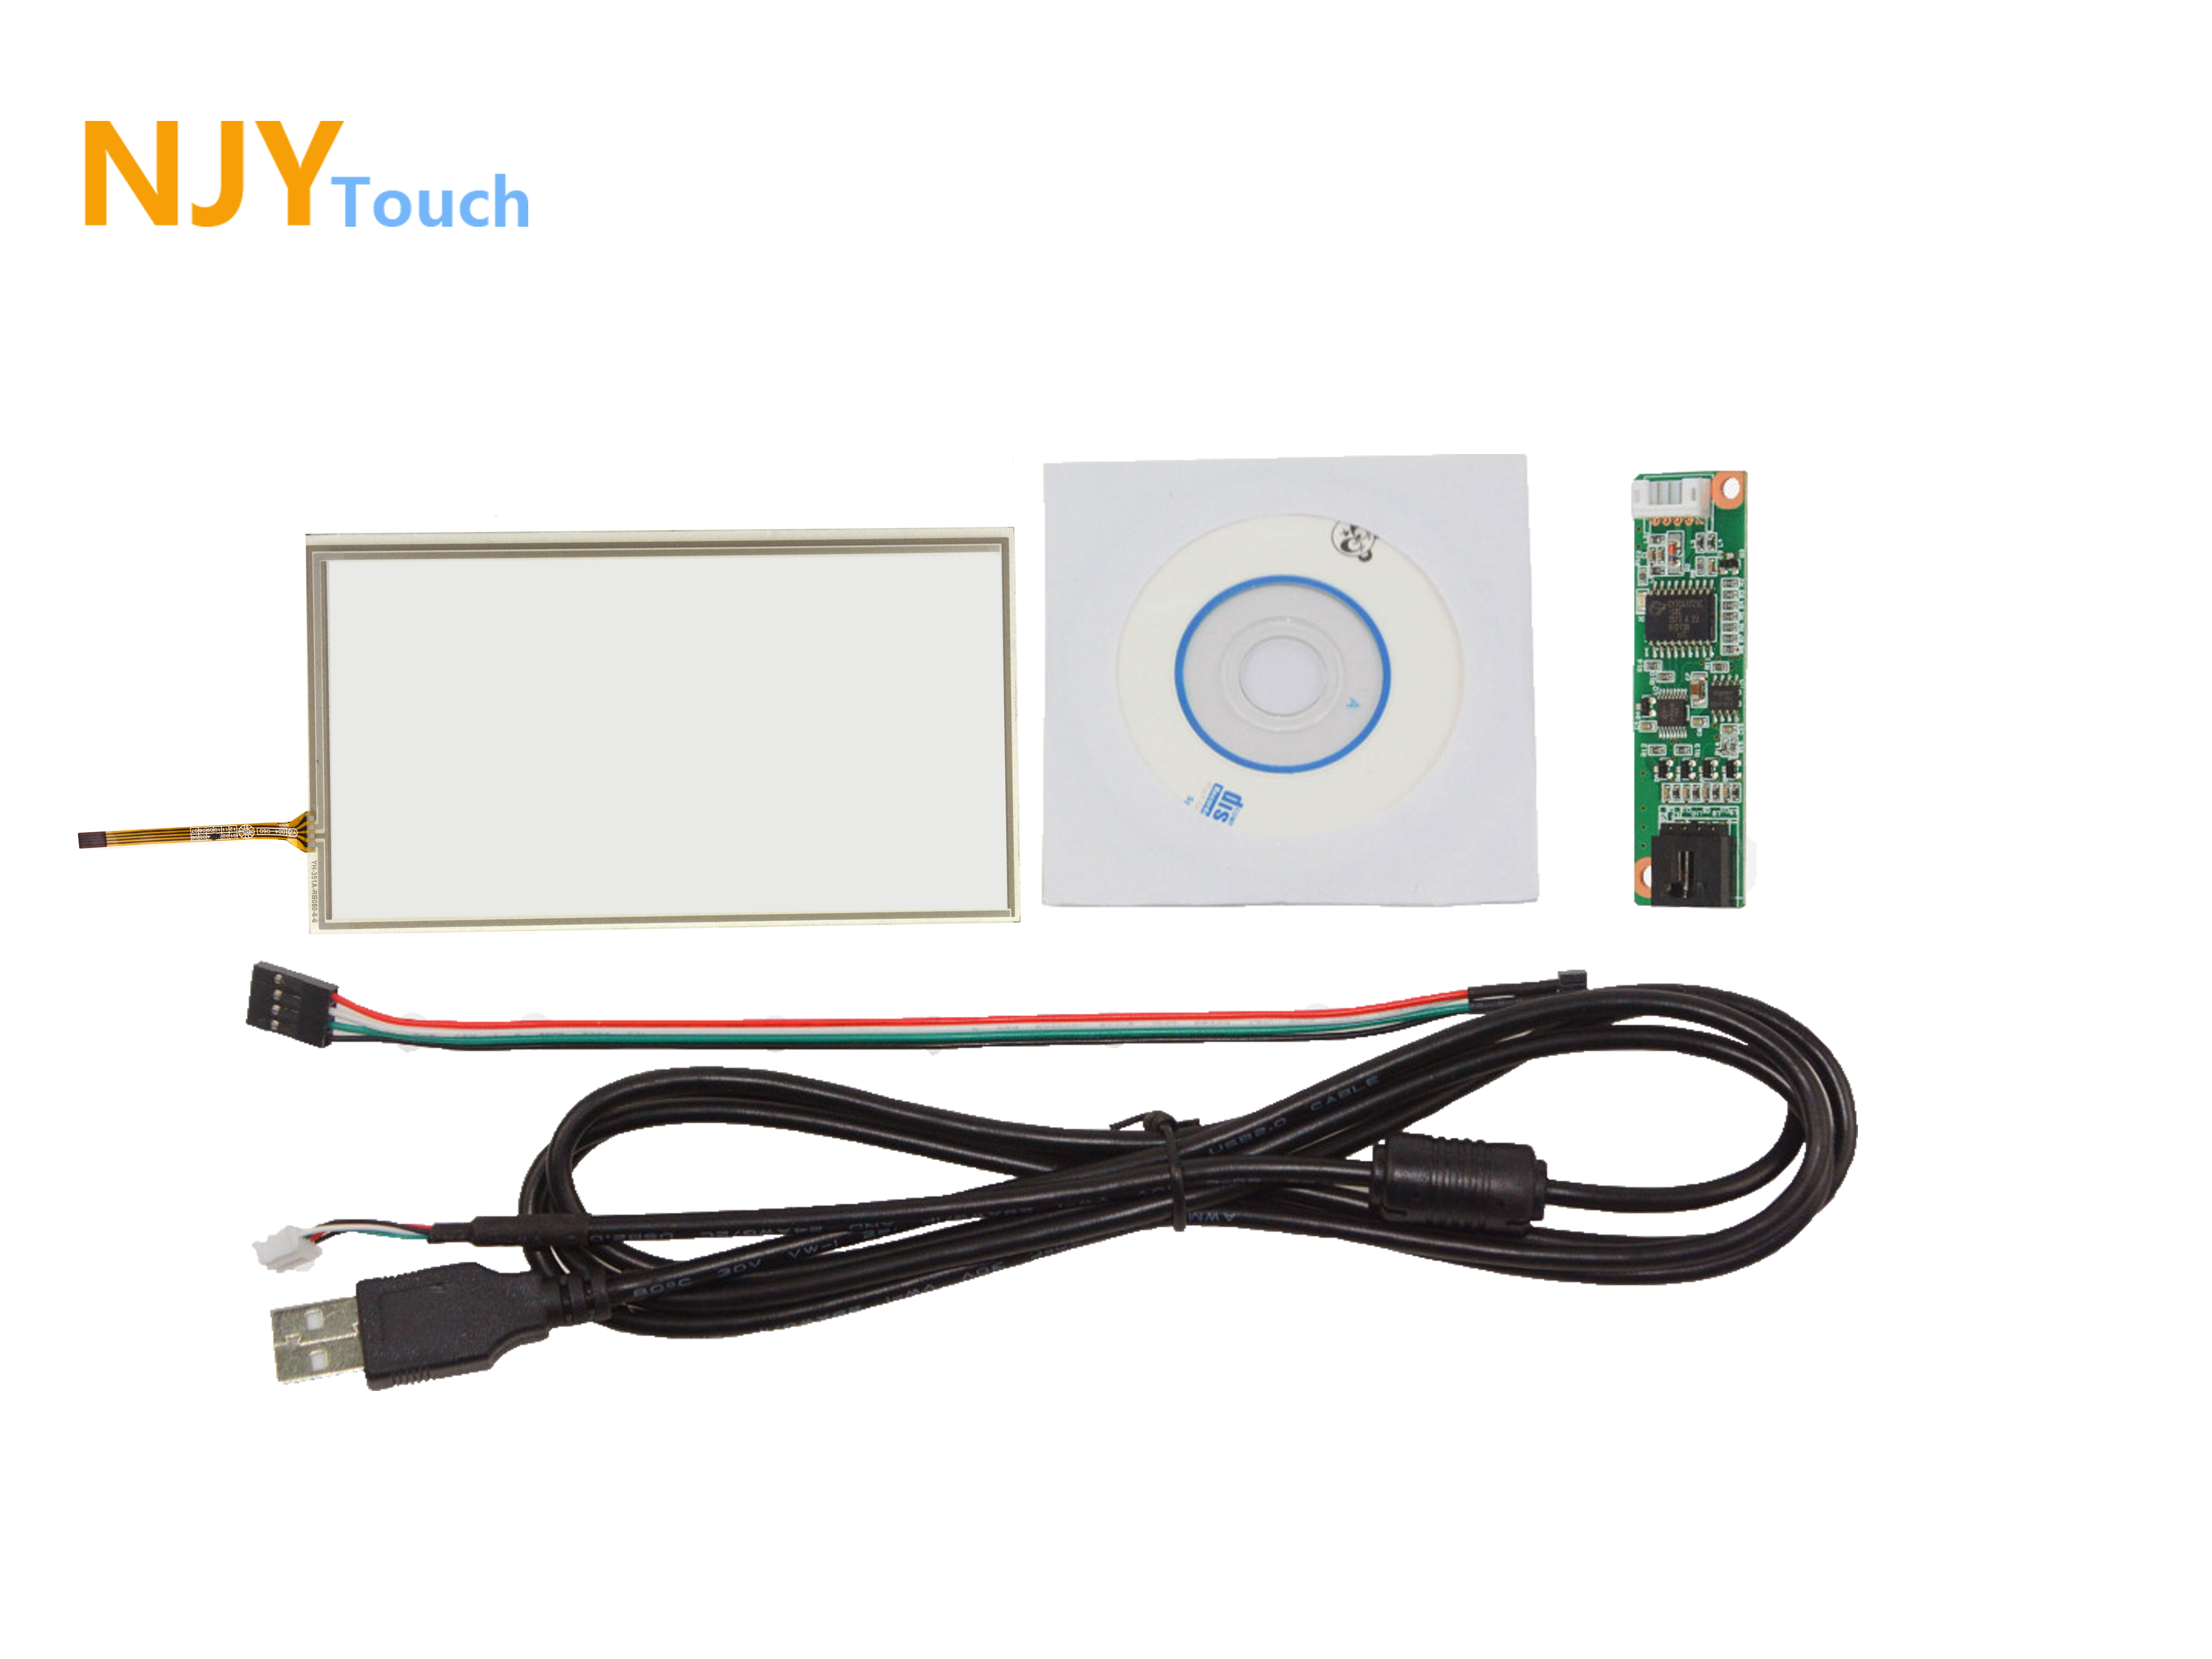 8inch 4 Wire Resistive Touch Panel 192mm x 116mm With USB Controller Card Kit